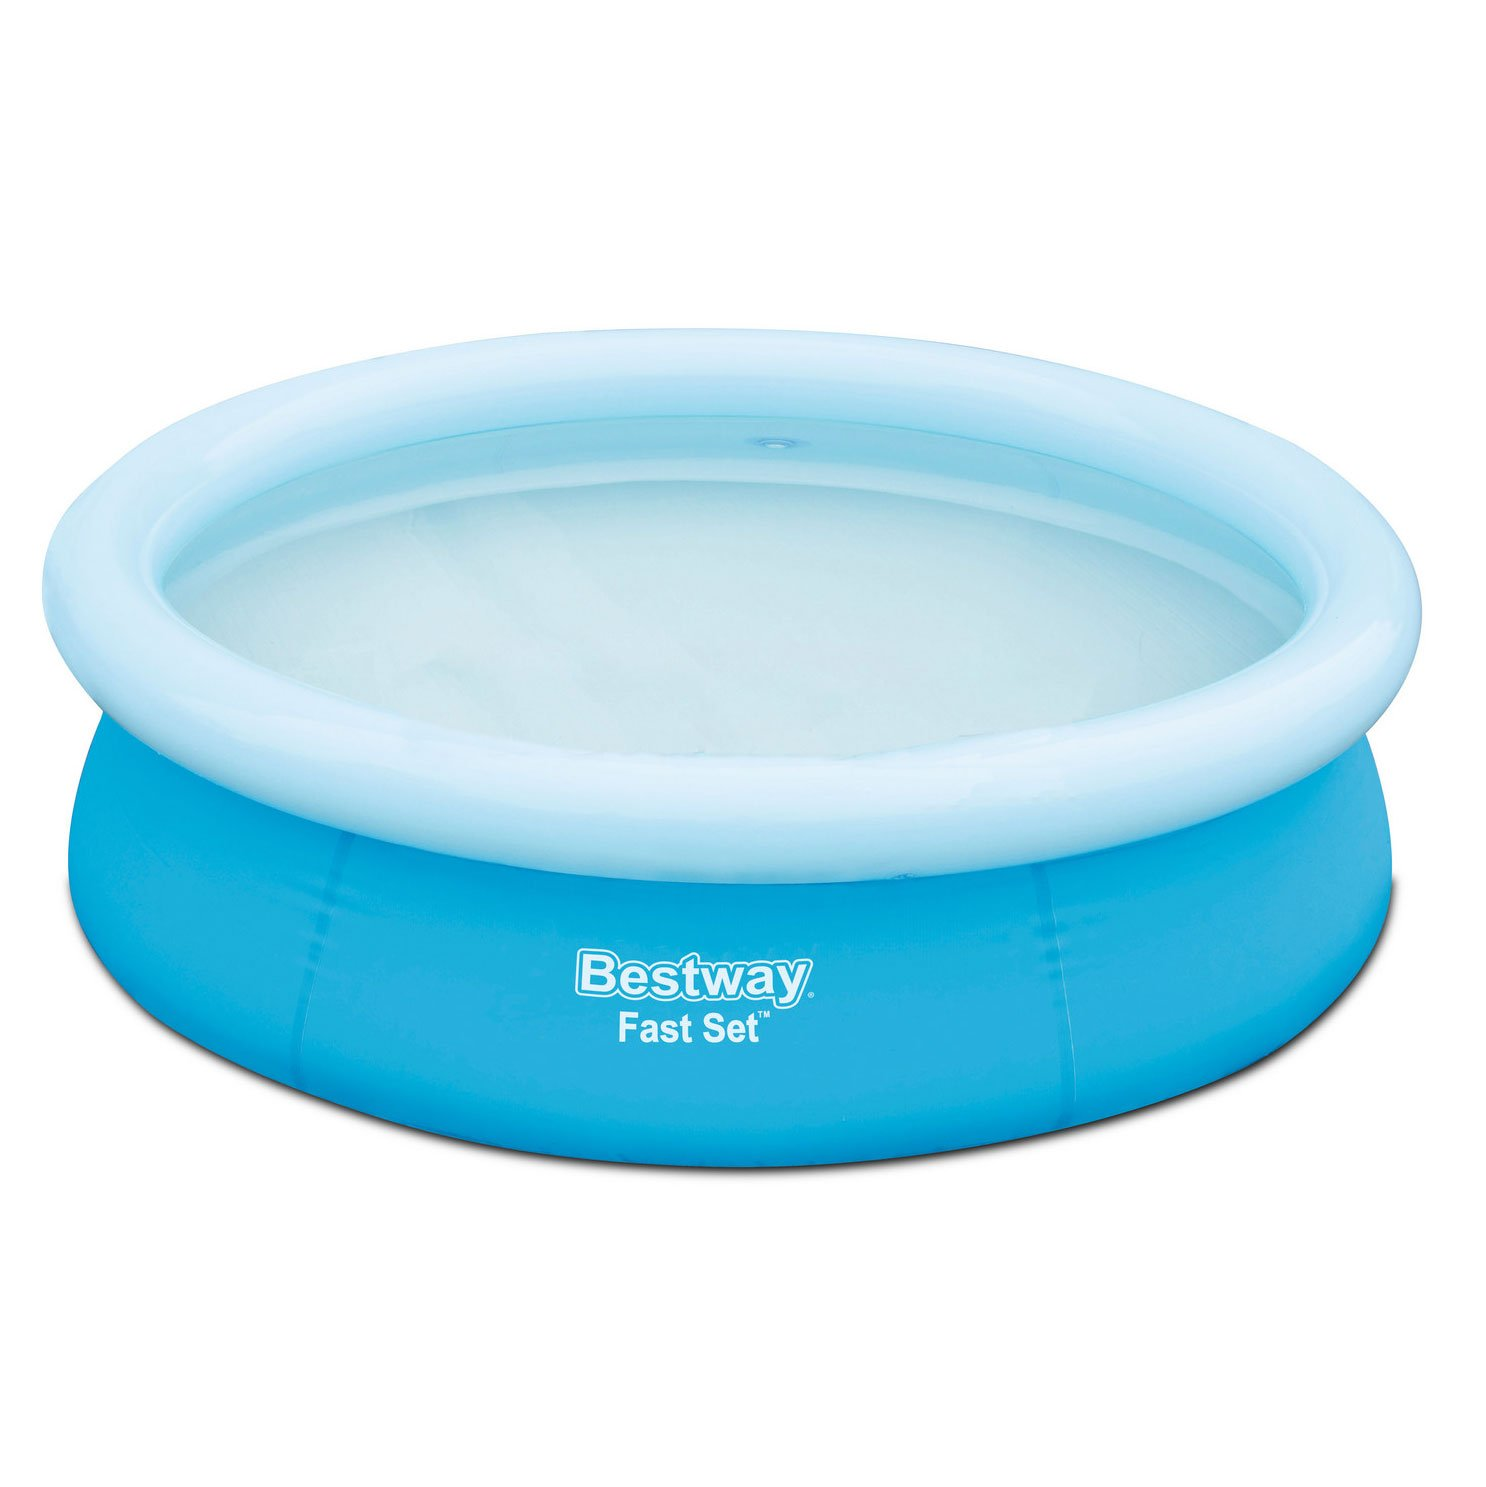 Bestway 6' x 20'' Fast Set Round Inflatable Above Ground Kids Swimming Pool, Blue